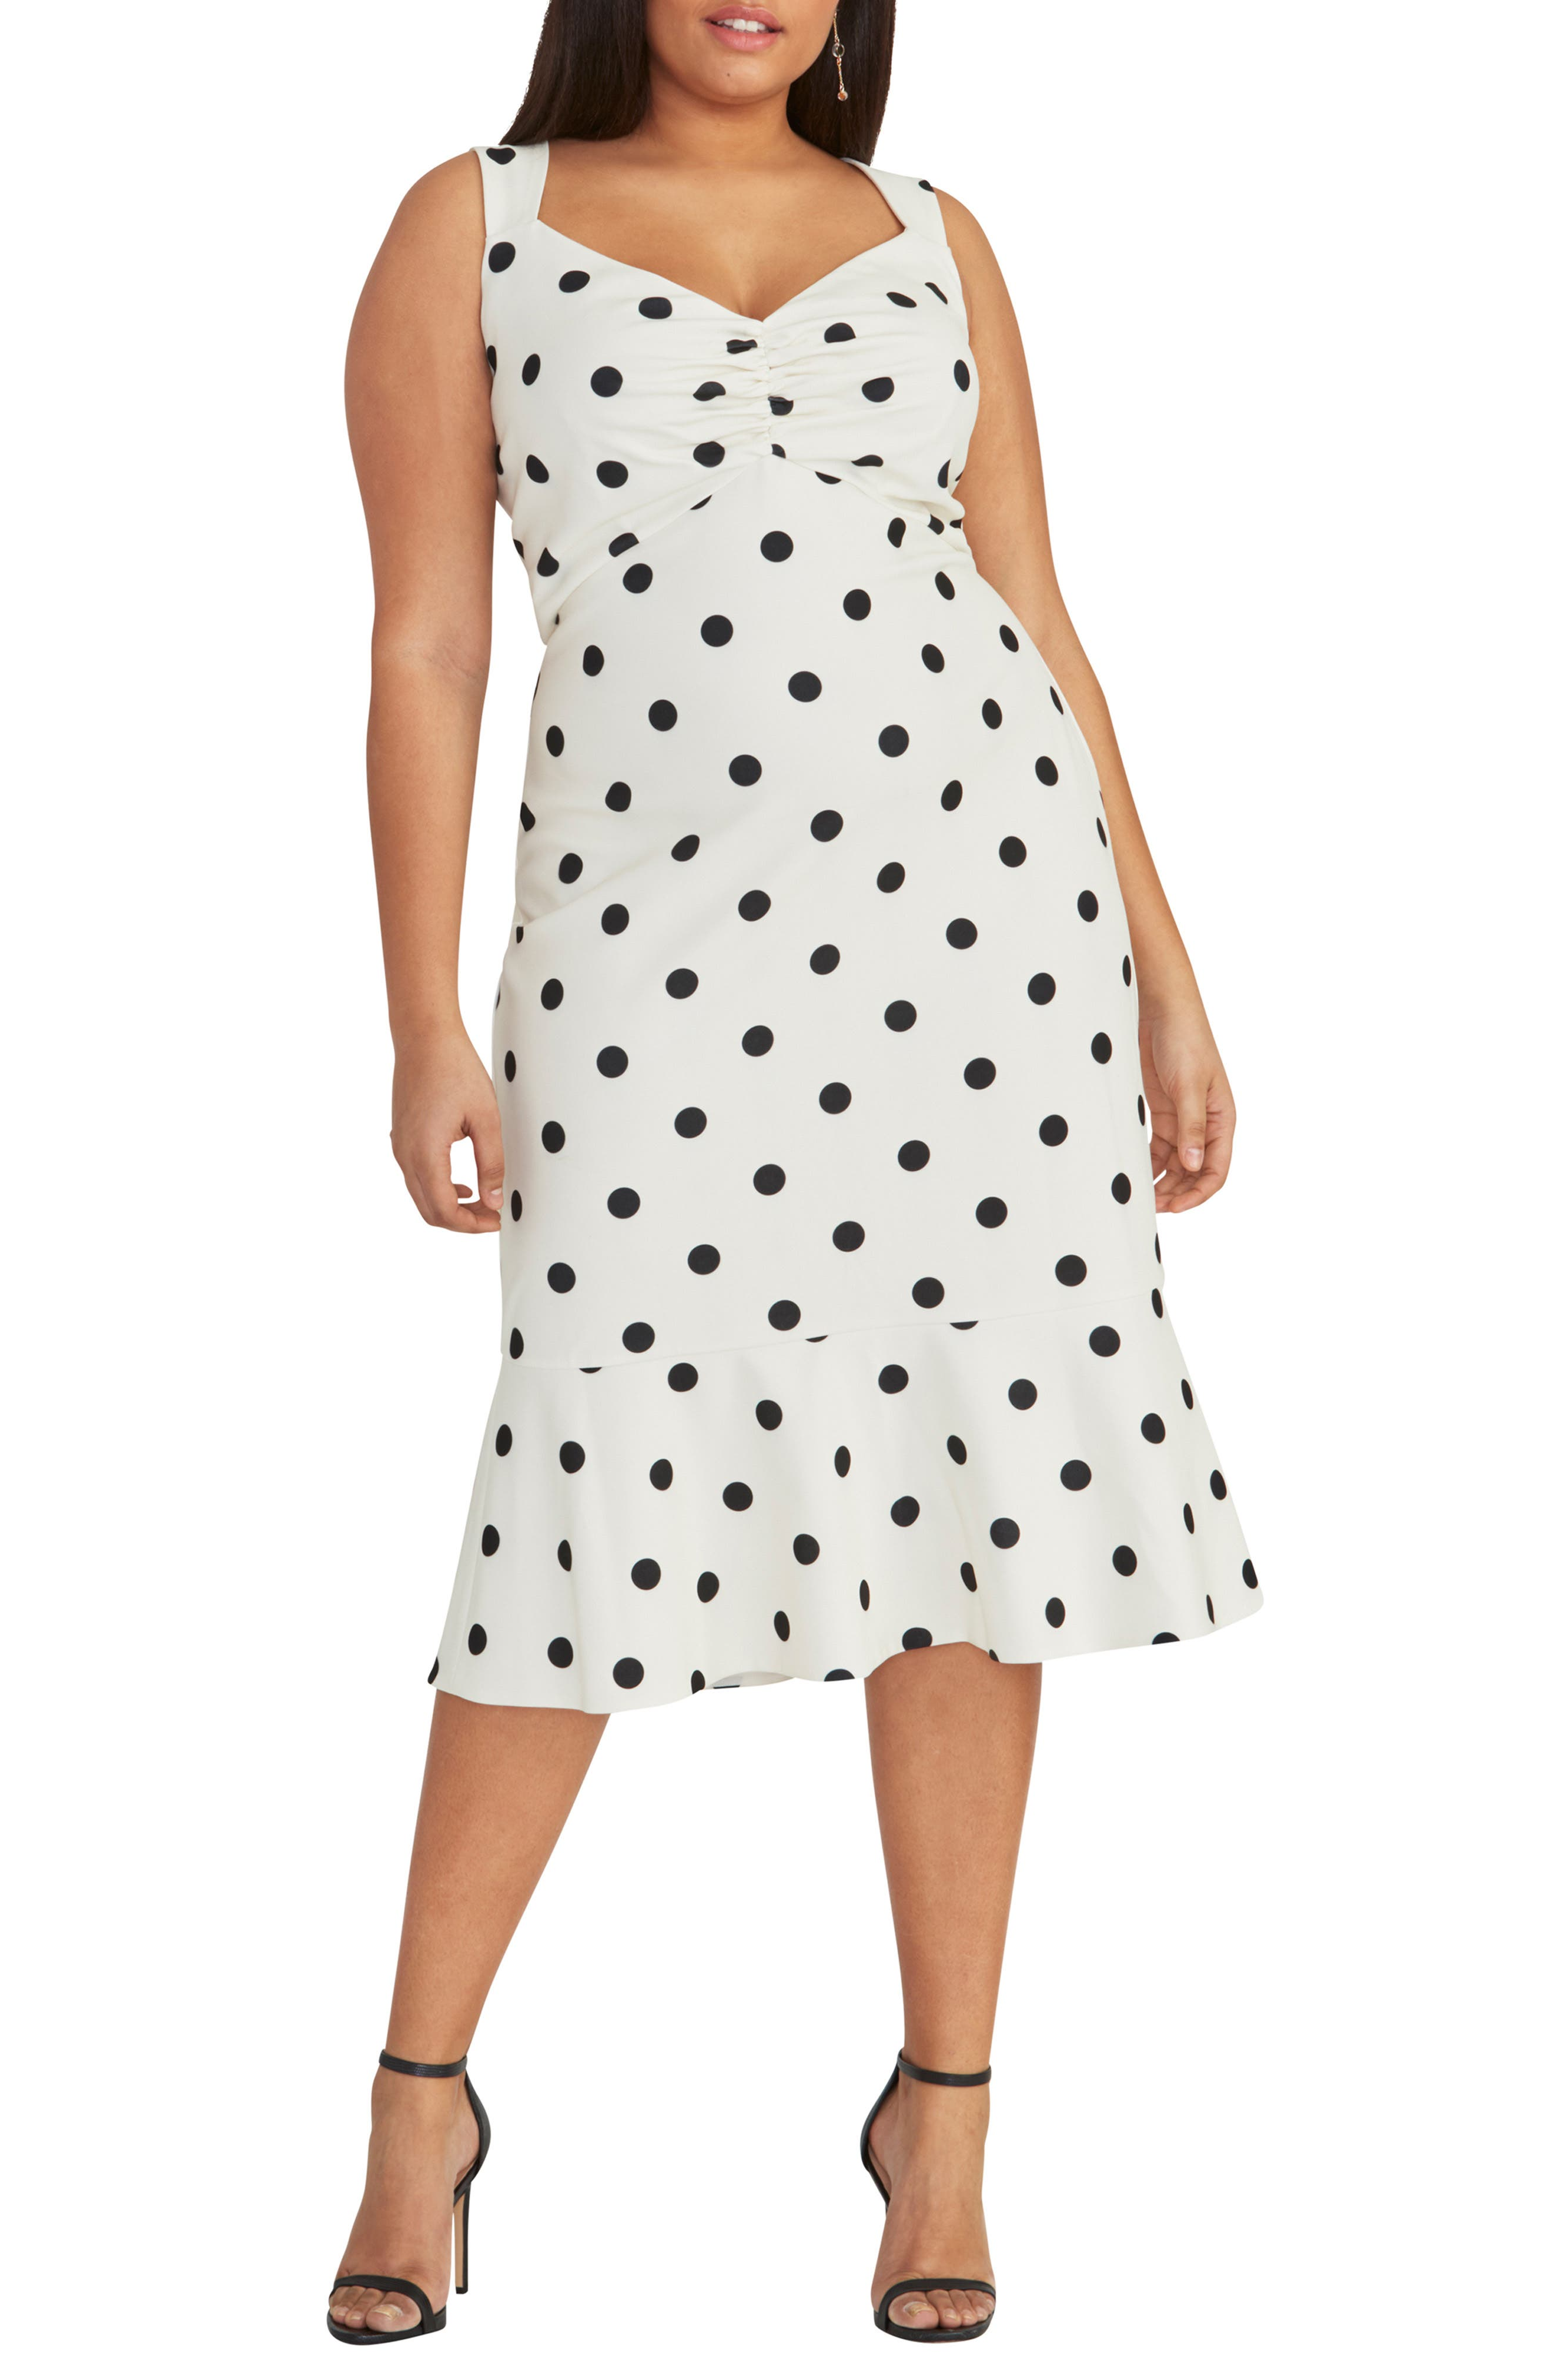 1950s Plus Size Dresses, Swing Dresses Plus Size Womens Rachel Rachel Roy Polka Dot Crepe Dress Size 14W - Ivory $96.75 AT vintagedancer.com